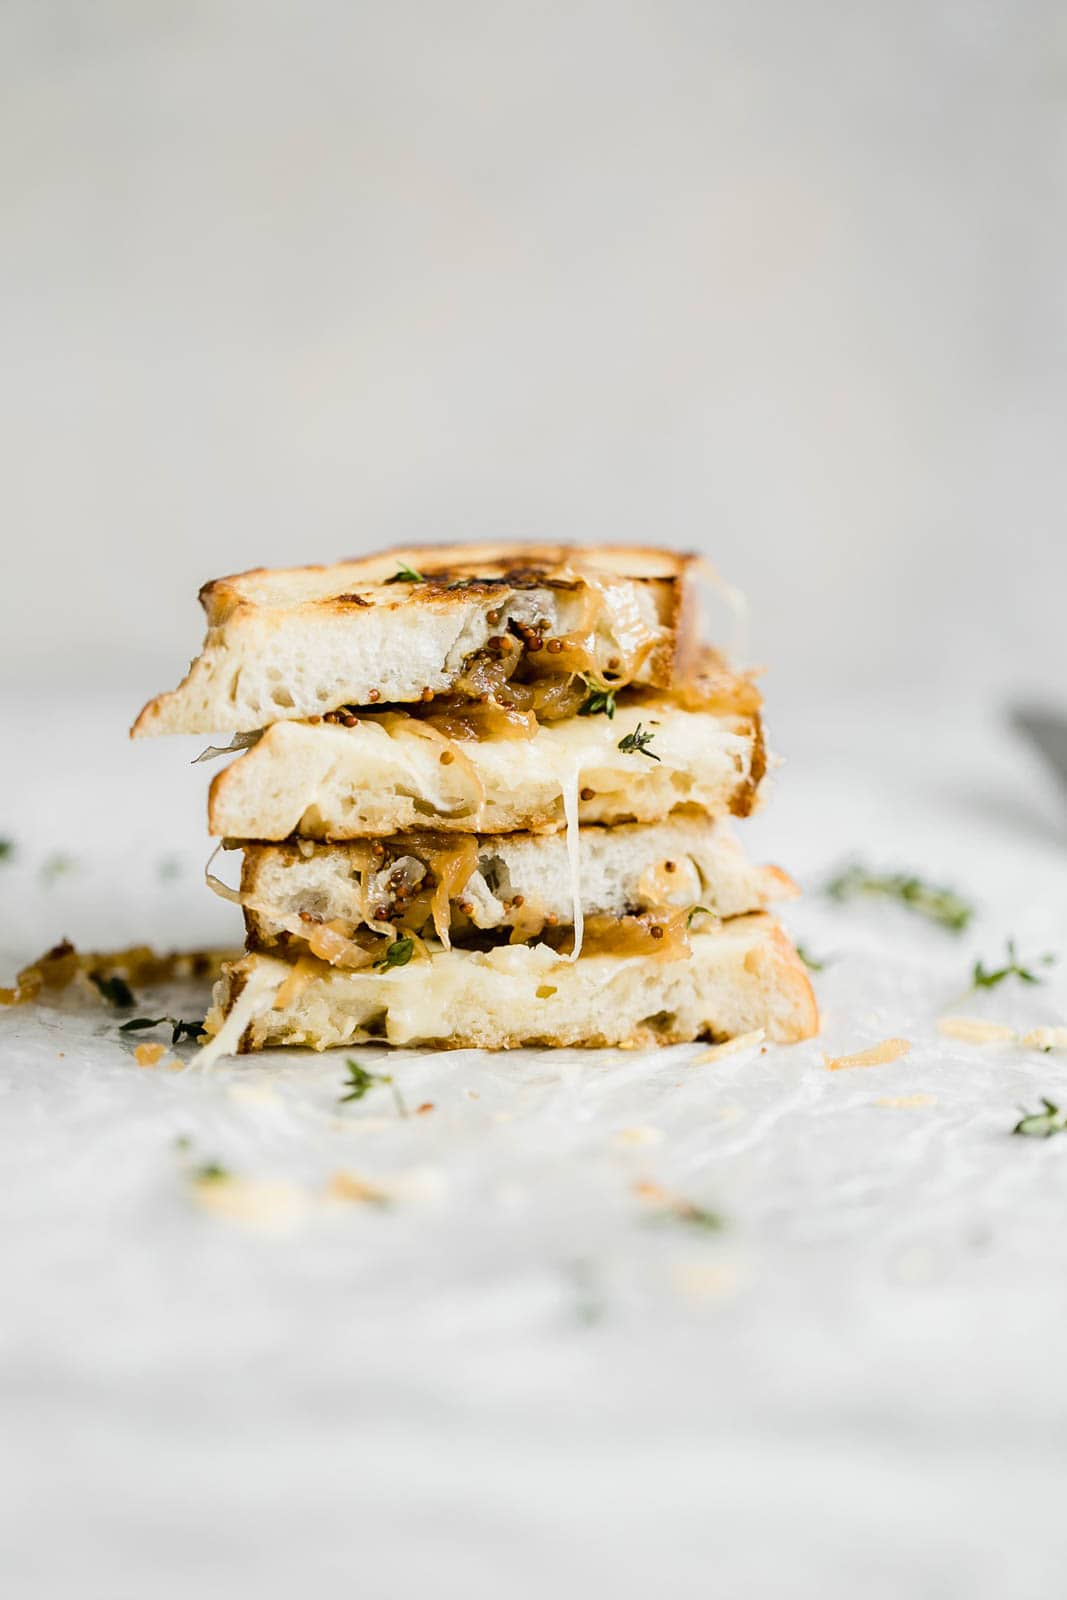 stack of Caramelized Onion, Whole Grain Mustard, and Gruyere Grilled Cheese sandwiches